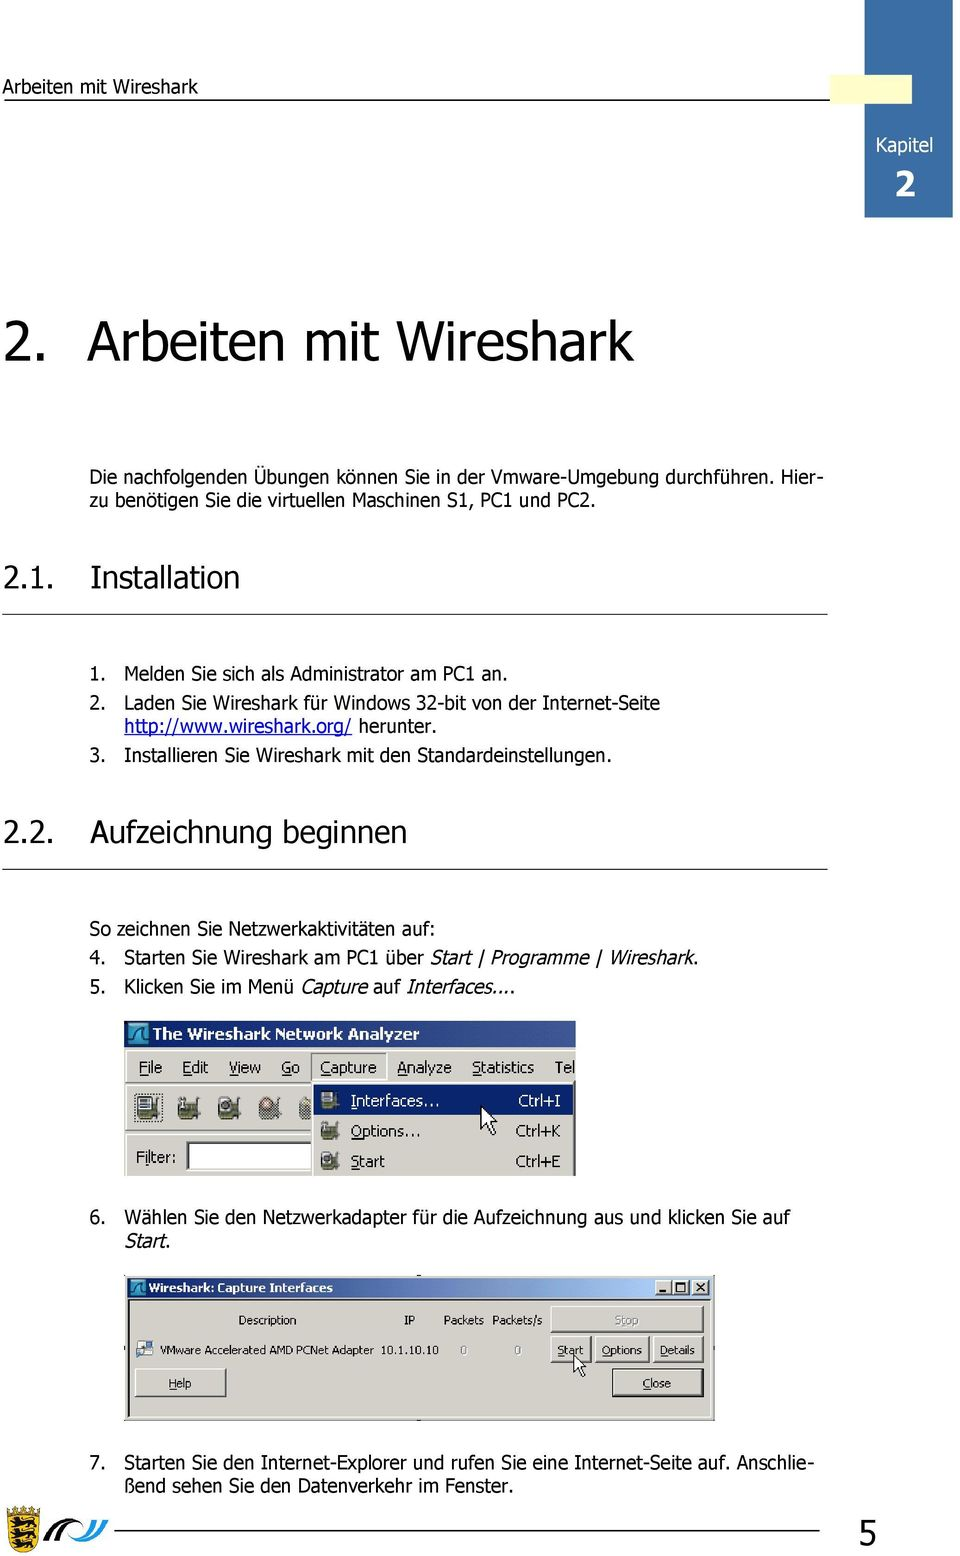 2.2. Aufzeichnung beginnen So zeichnen Sie Netzwerkaktivitäten auf: 4. Starten Sie Wireshark am PC1 über Start Programme Wireshark. 5. Klicken Sie im Menü Capture auf Interfaces... 6.